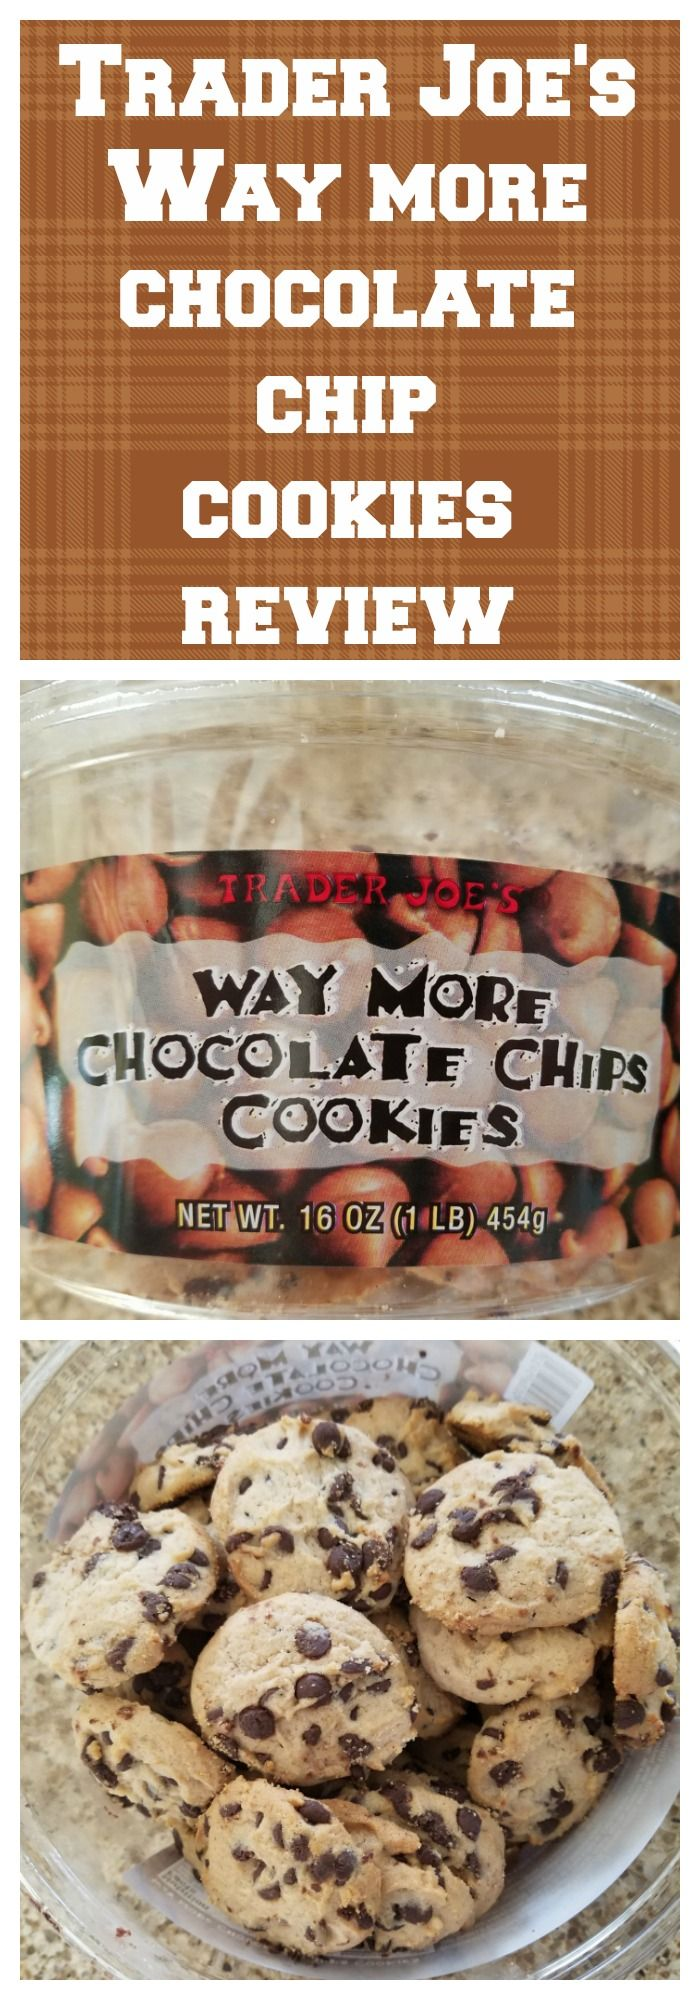 The 43 best images about Trader Joe's Chocolate on Pinterest ...